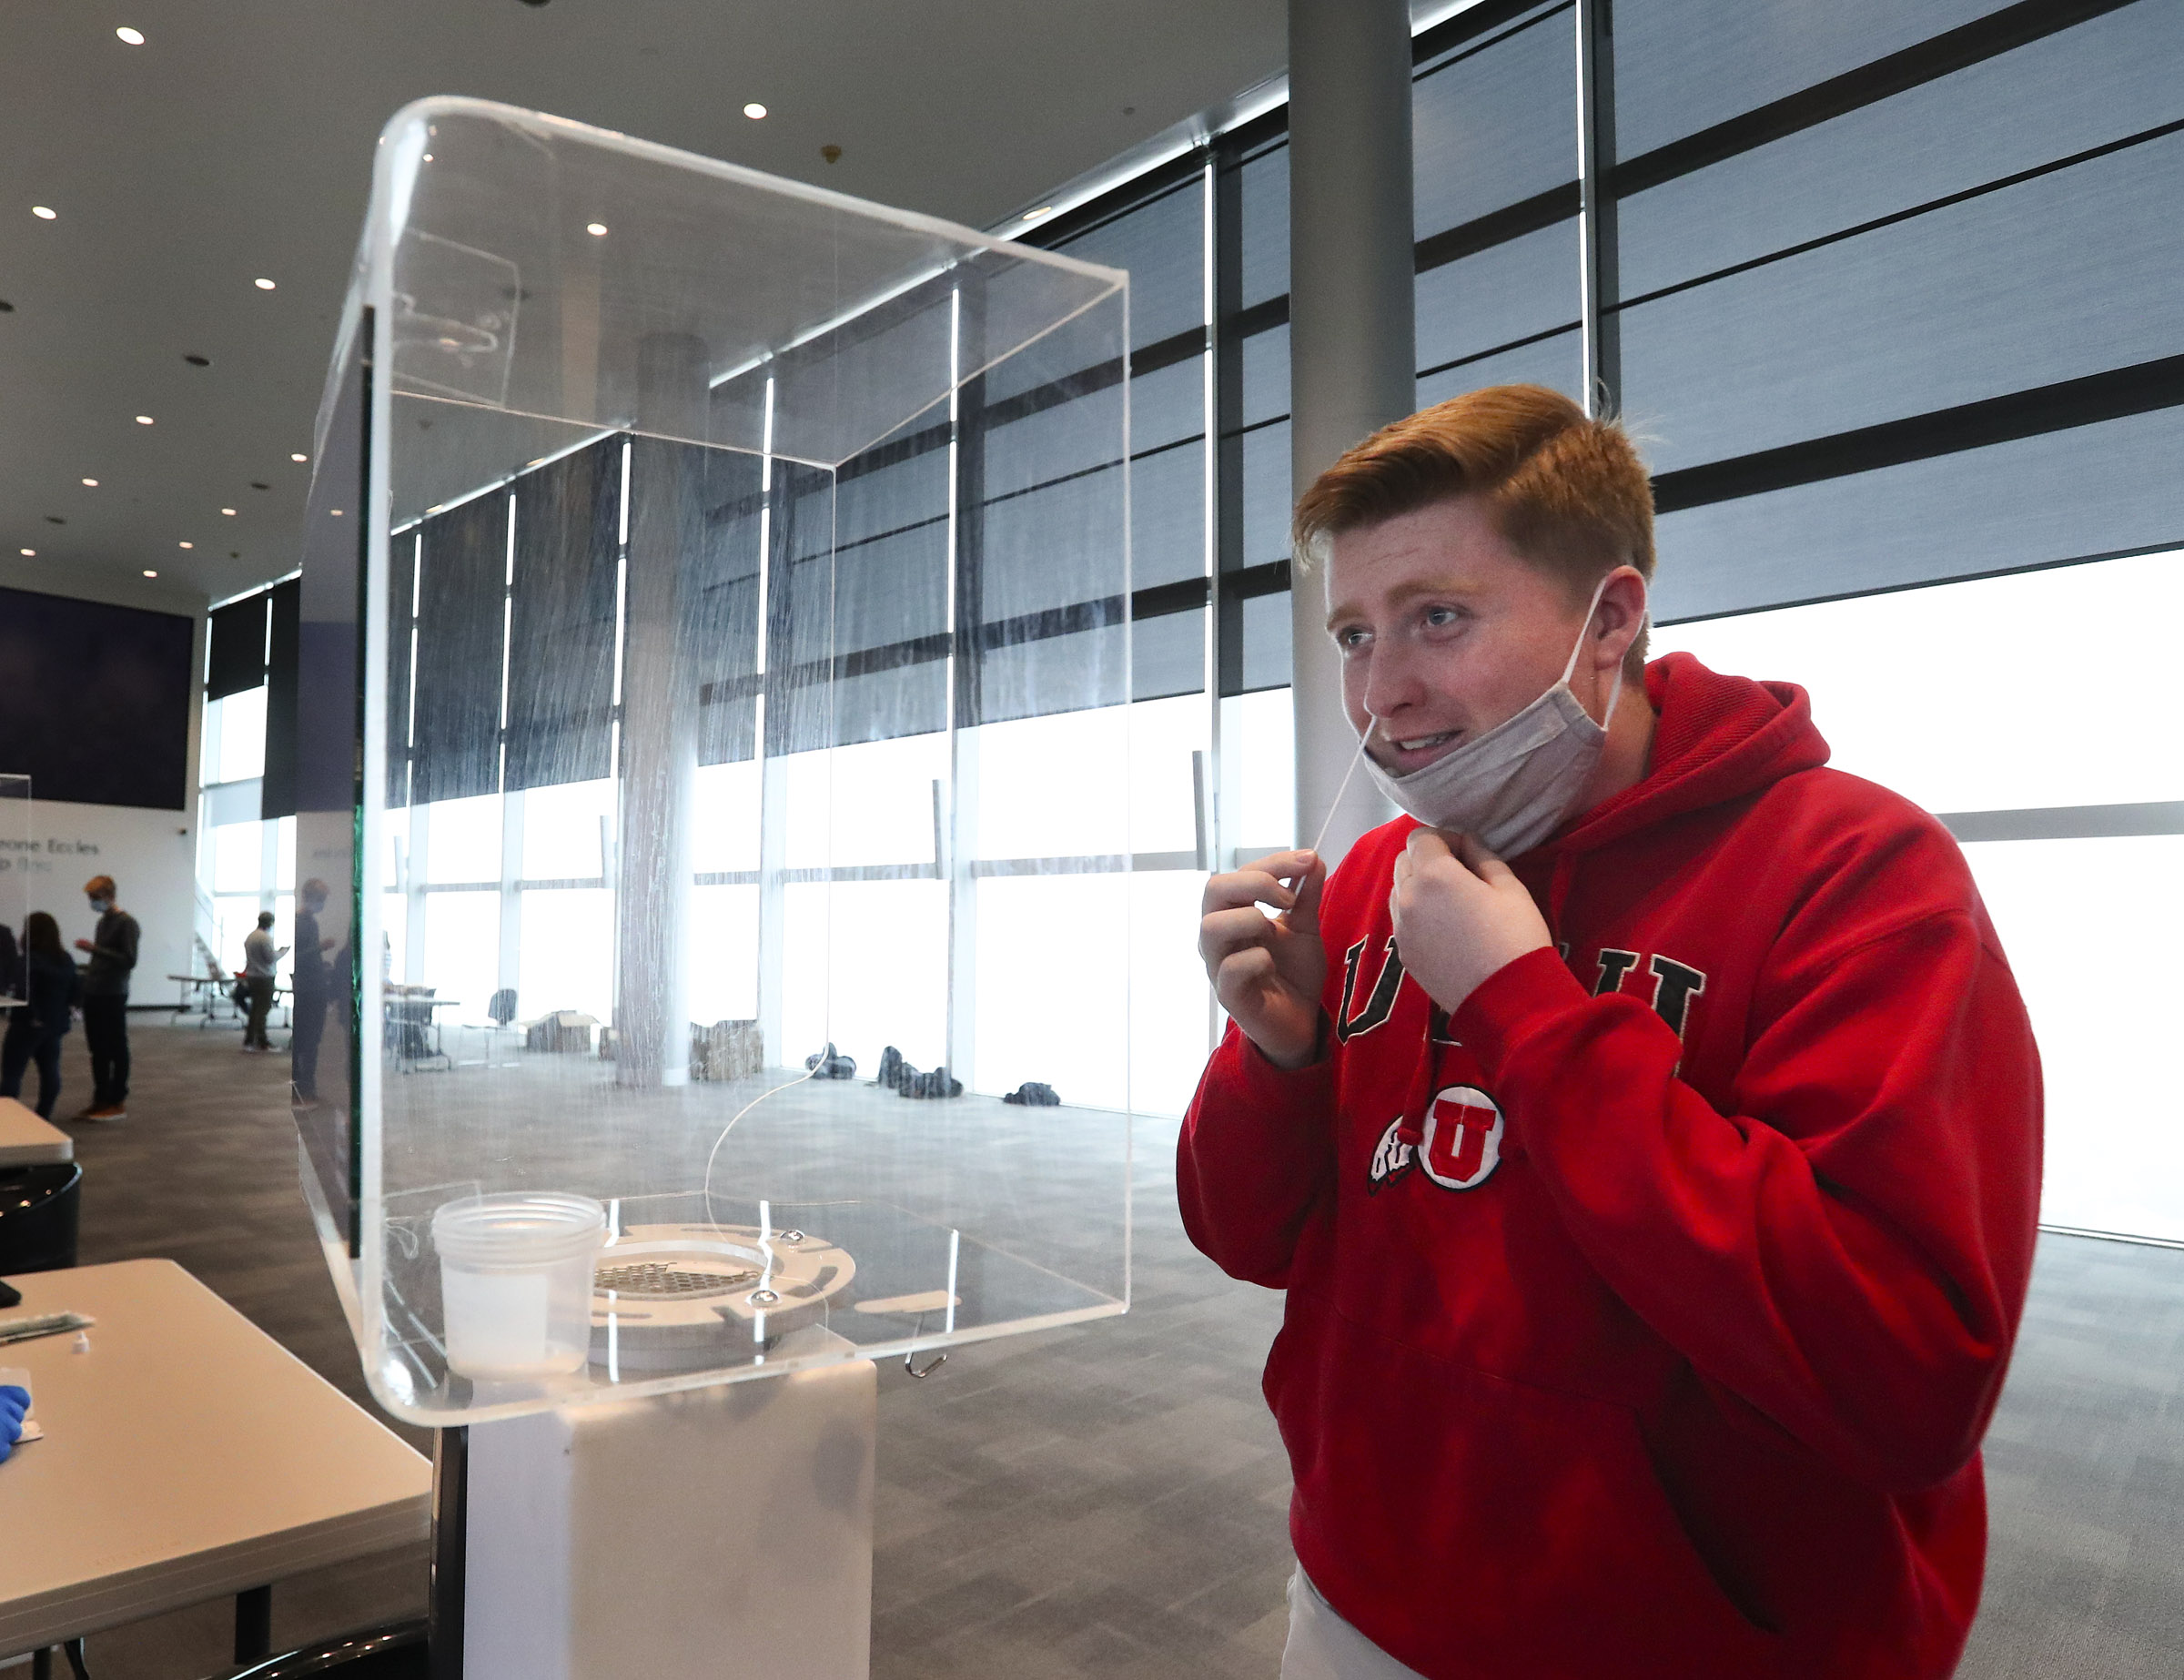 University of Utah sophomore Jared Peters swabs his nostril for a rapid COVID-19 test at Rice-Eccles Stadium in Salt Lake City on Wednesday, Nov. 11, 2020. The university has launched an initiative to test 32,000 students for COVID-19 before the Thanksgiving break.